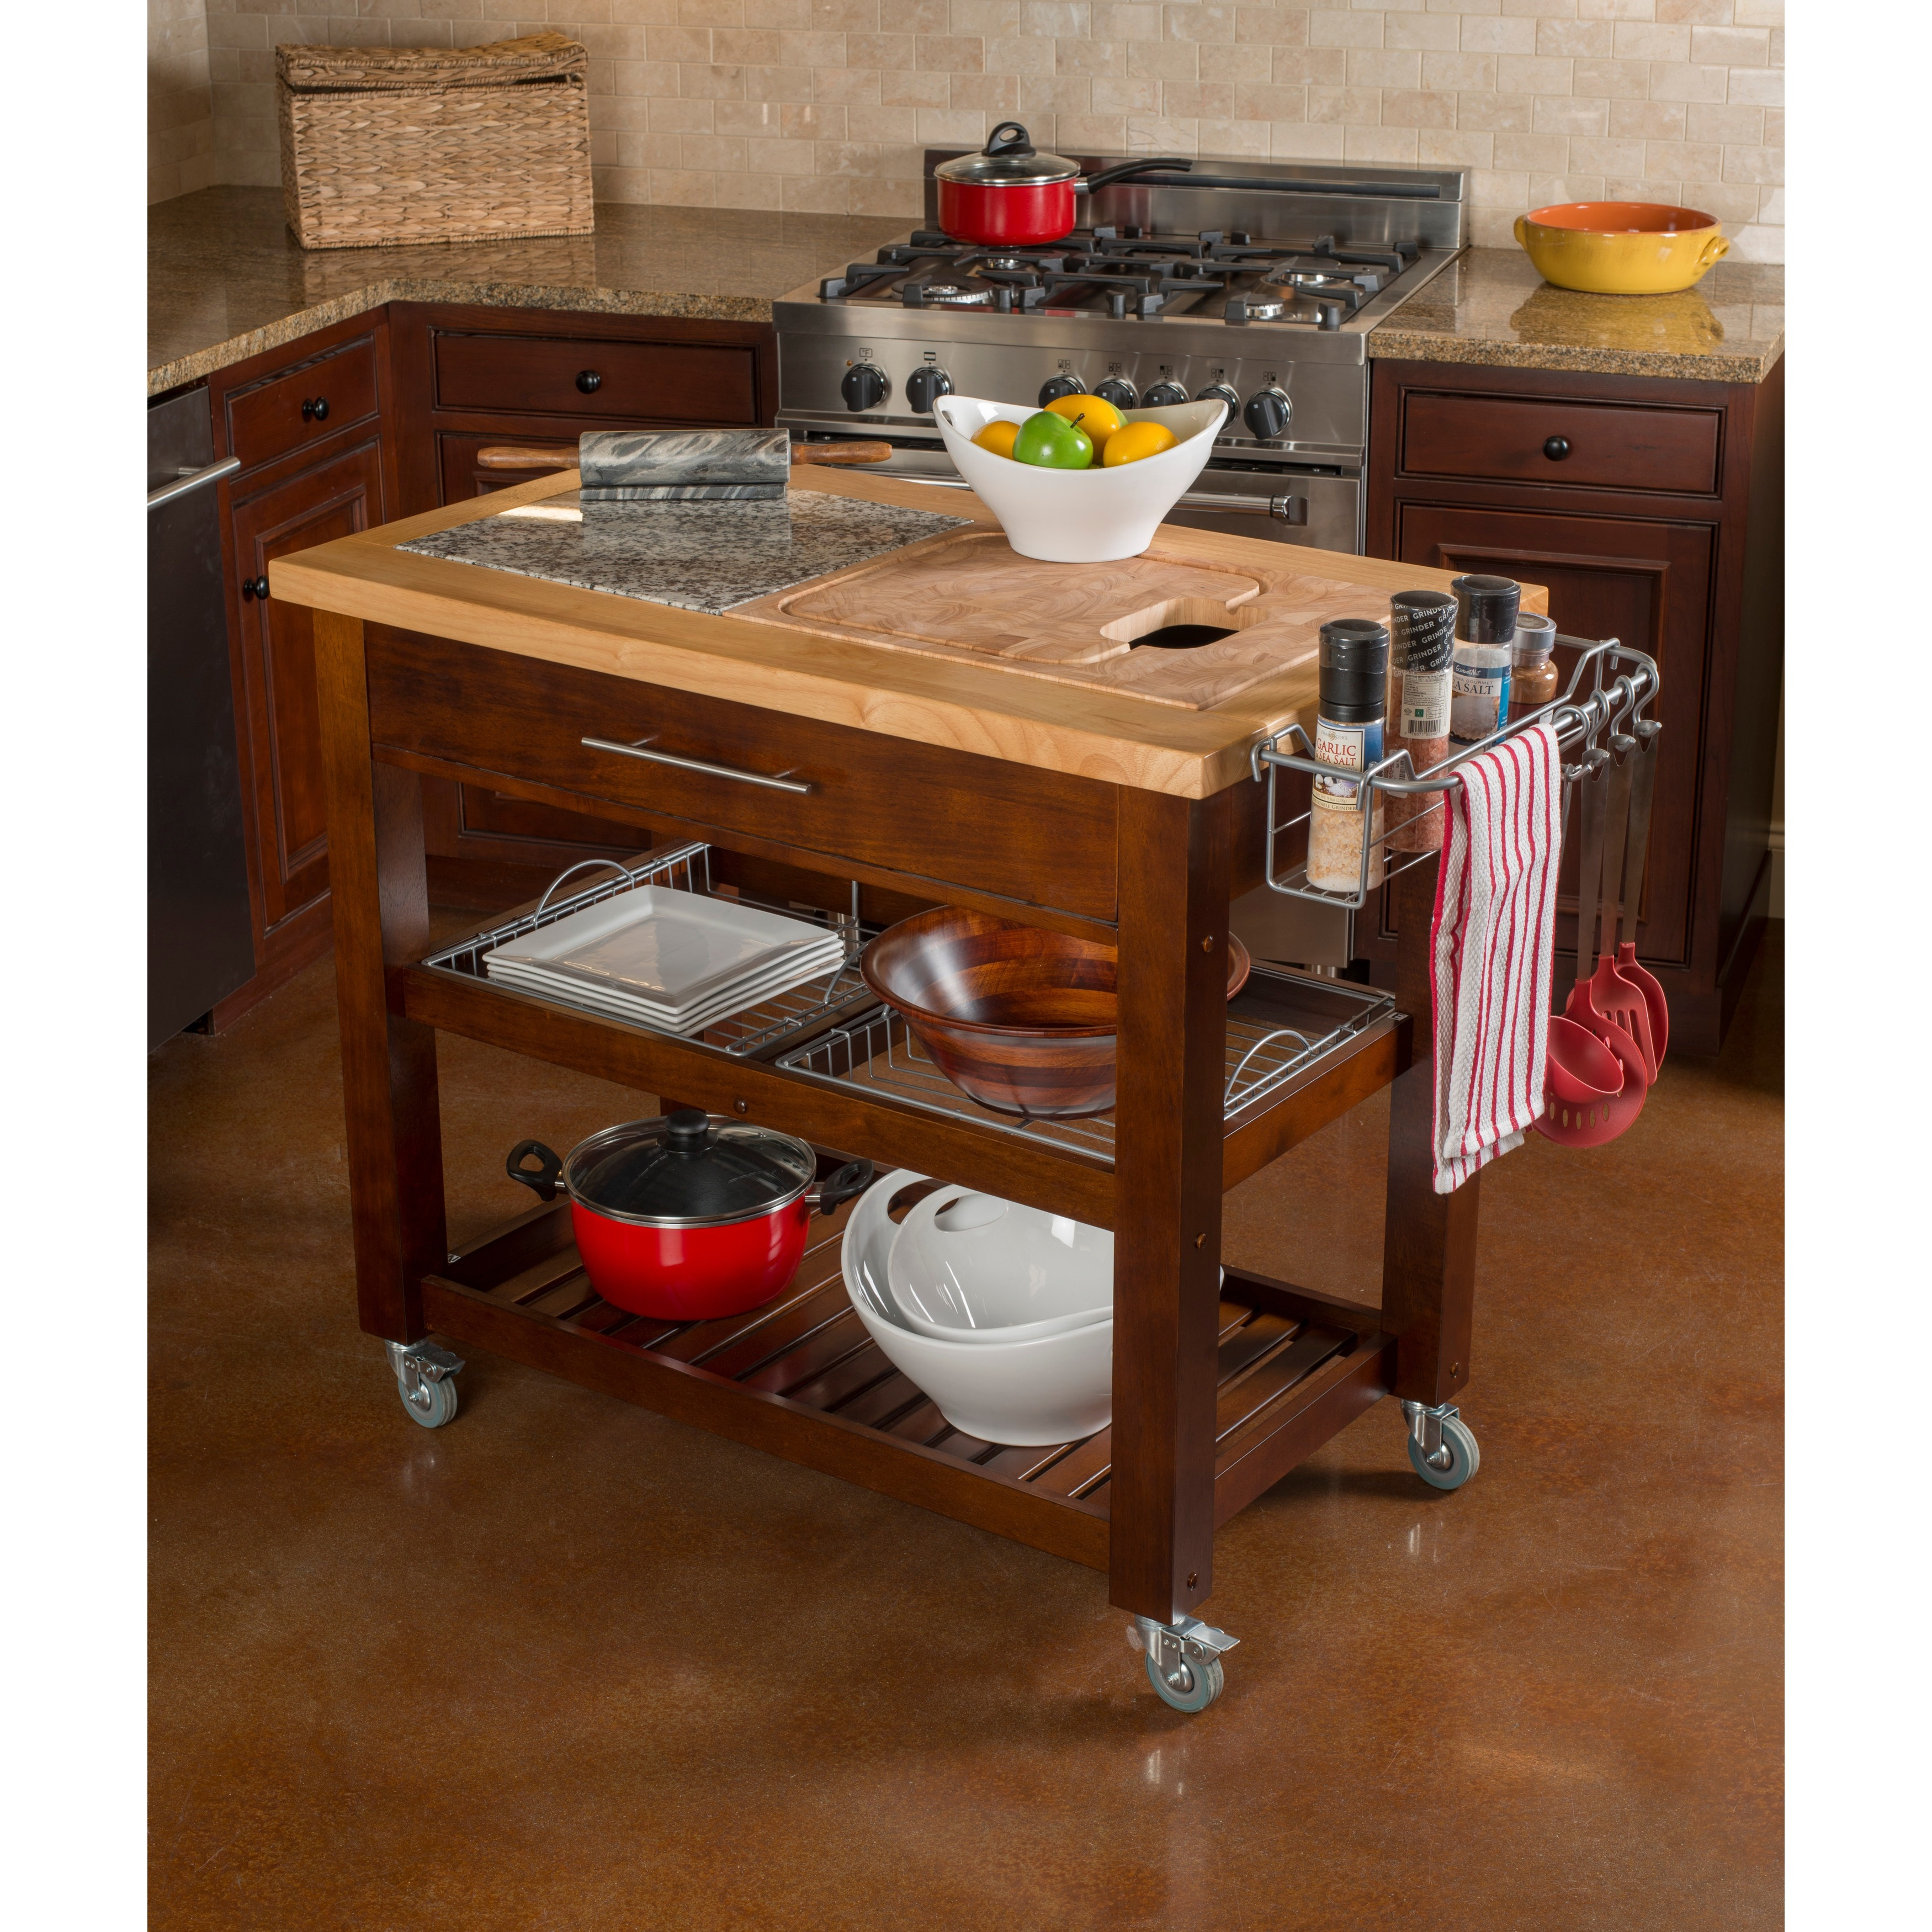 Ordinaire Shop Chris U0026 Chris 24 X 40 Pro Chef Espresso Kitchen Work Station   On Sale    Free Shipping Today   Overstock.com   6716102